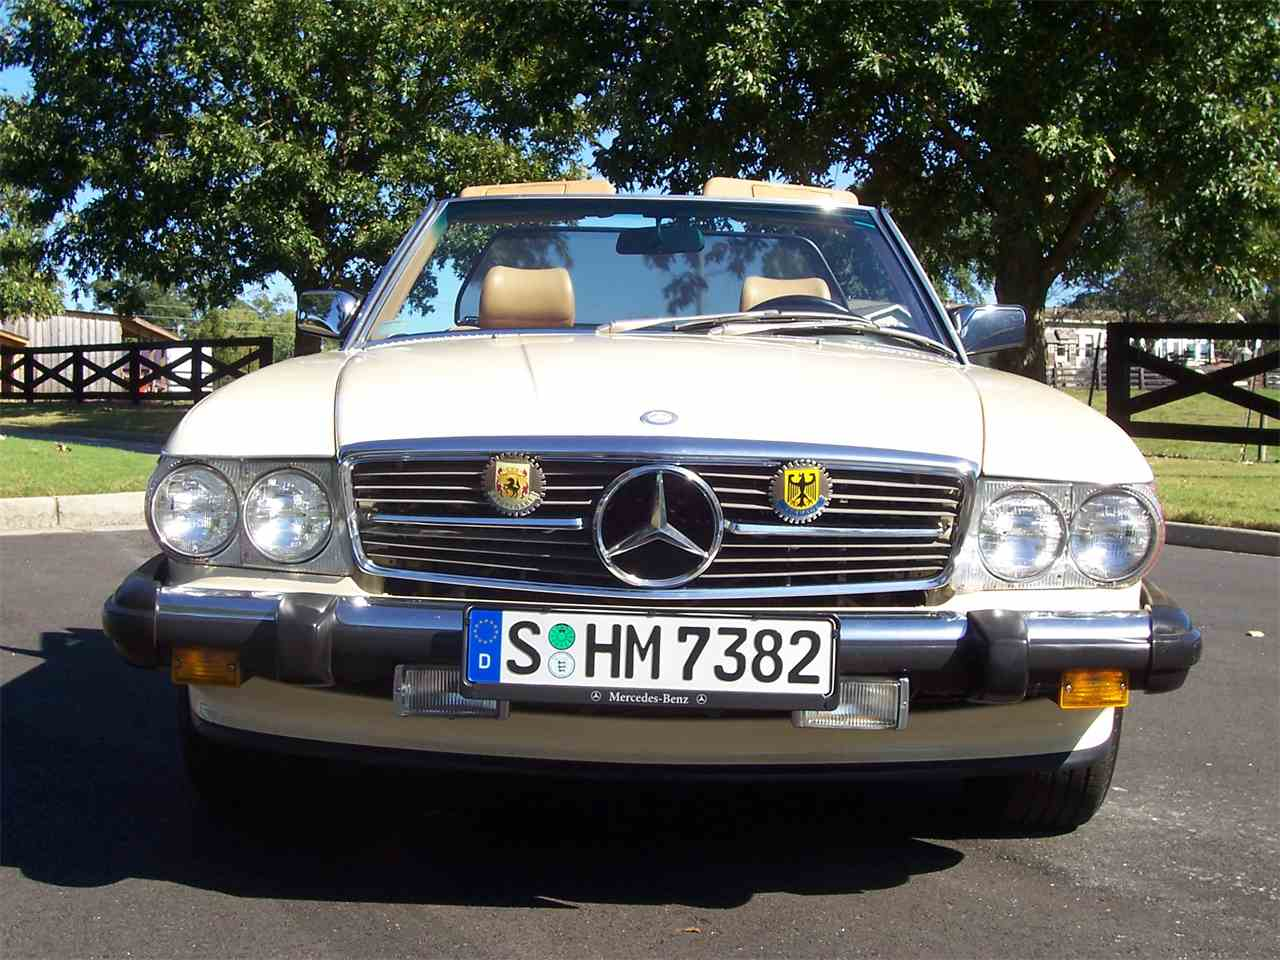 Large Picture of 1989 Mercedes-Benz 560SL located in Georgia - $29,900.00 - M4KP